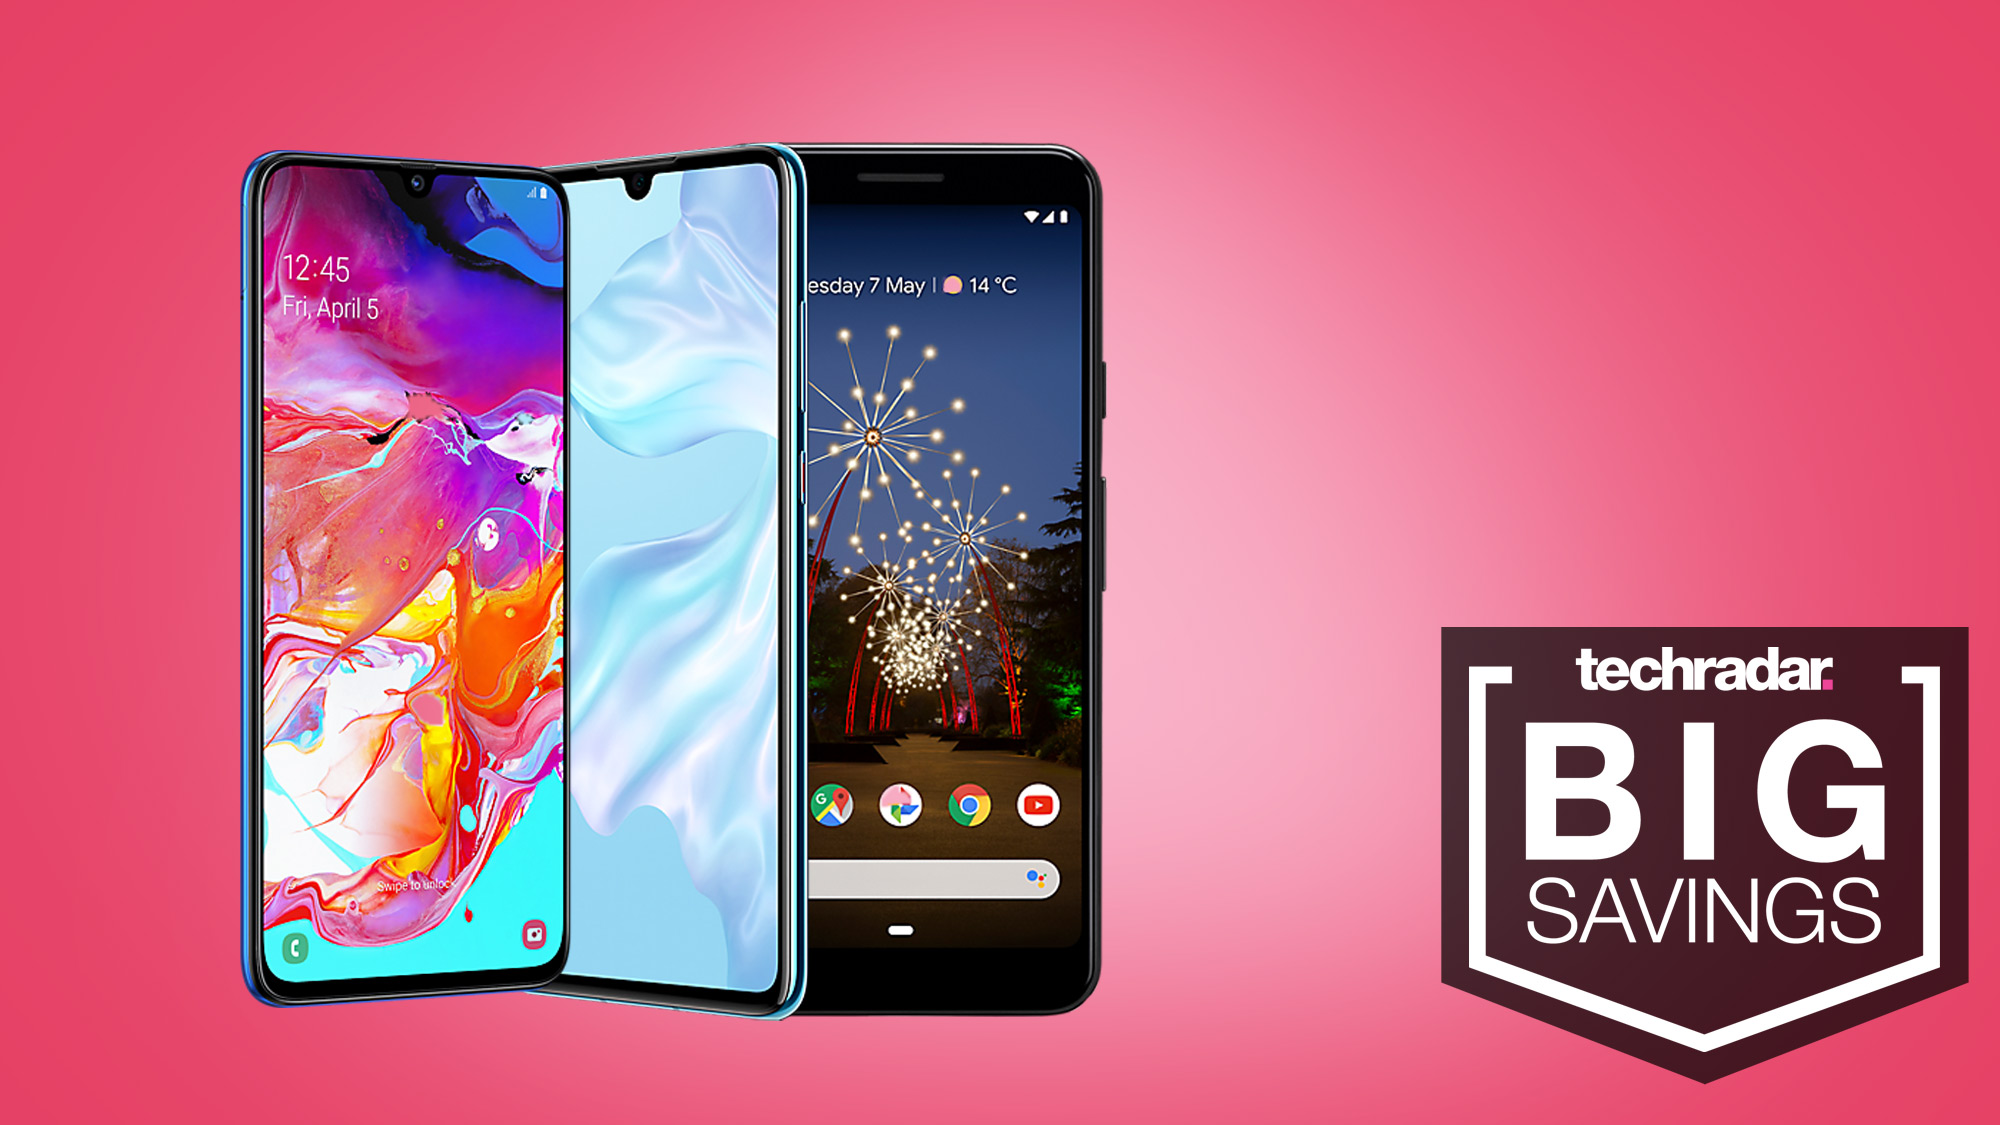 These exclusive phone deals are just £20/pm - Samsung, Apple, Huawei and Google